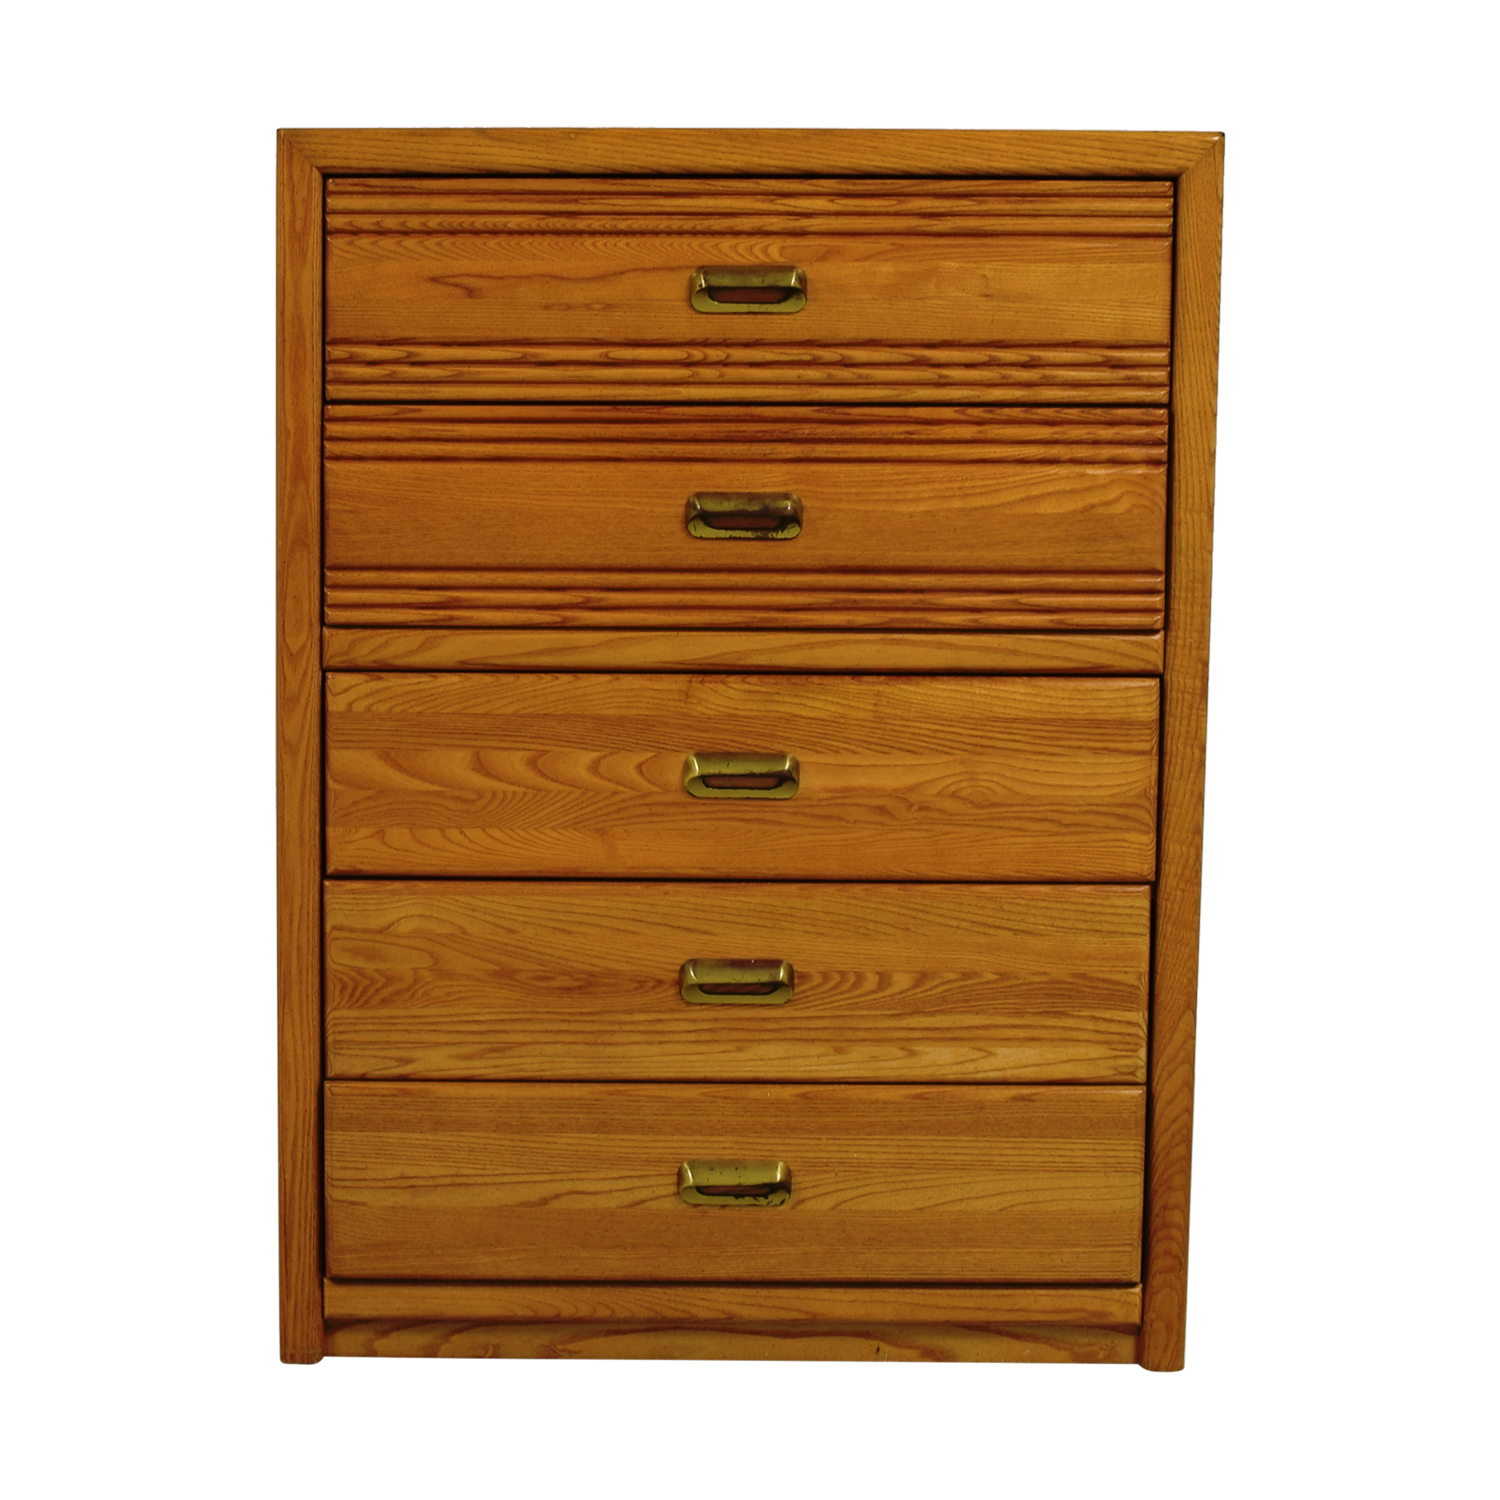 Stanley Furniture Stanley Furniture Five-Drawer Oak Dresser Storage